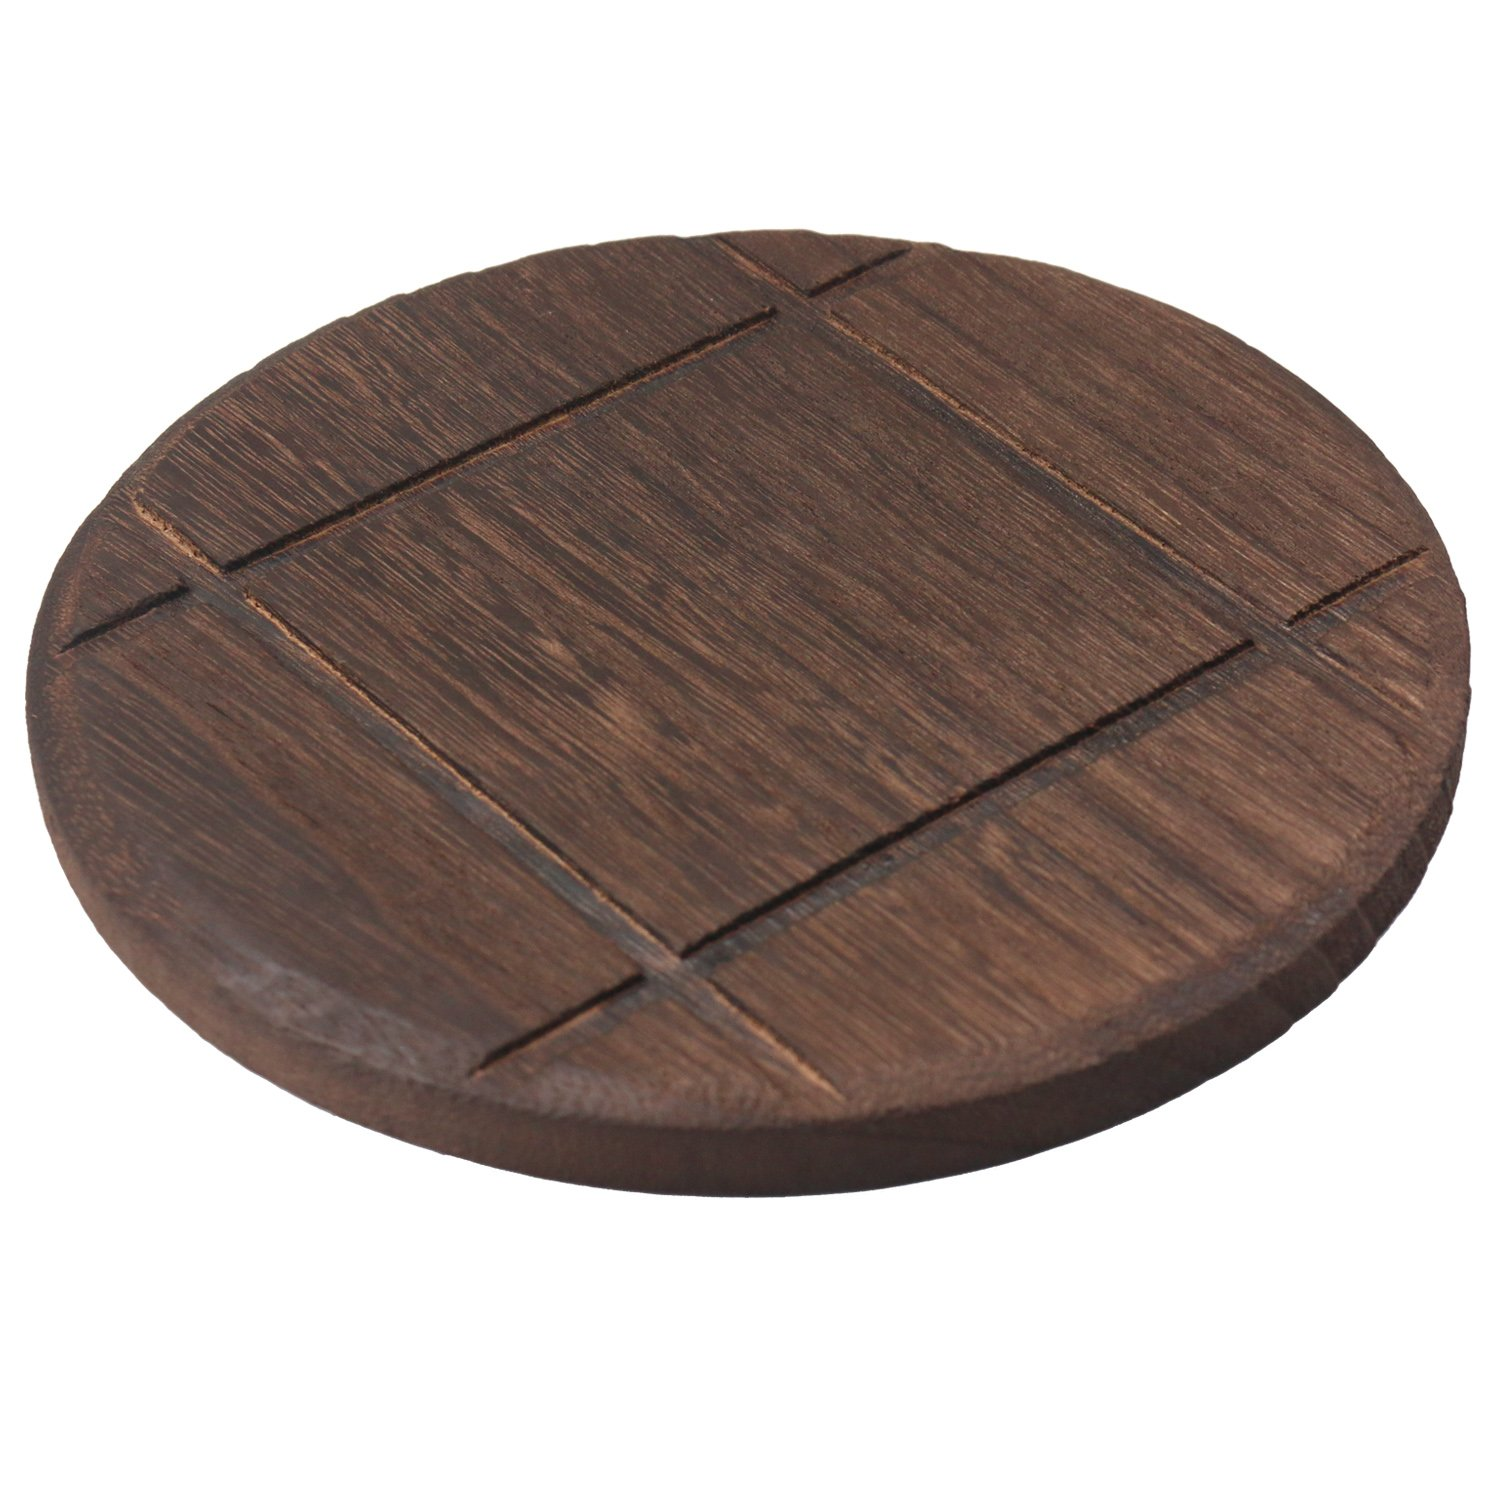 wellhouse Wooden Trivets Hot Pads Heat Resistant Pads Teapot Trivets Non-slip Pads for Hot Dishes and Pot Wooden Hot Pads Insulation Coasters Round and Square (Square, 1)